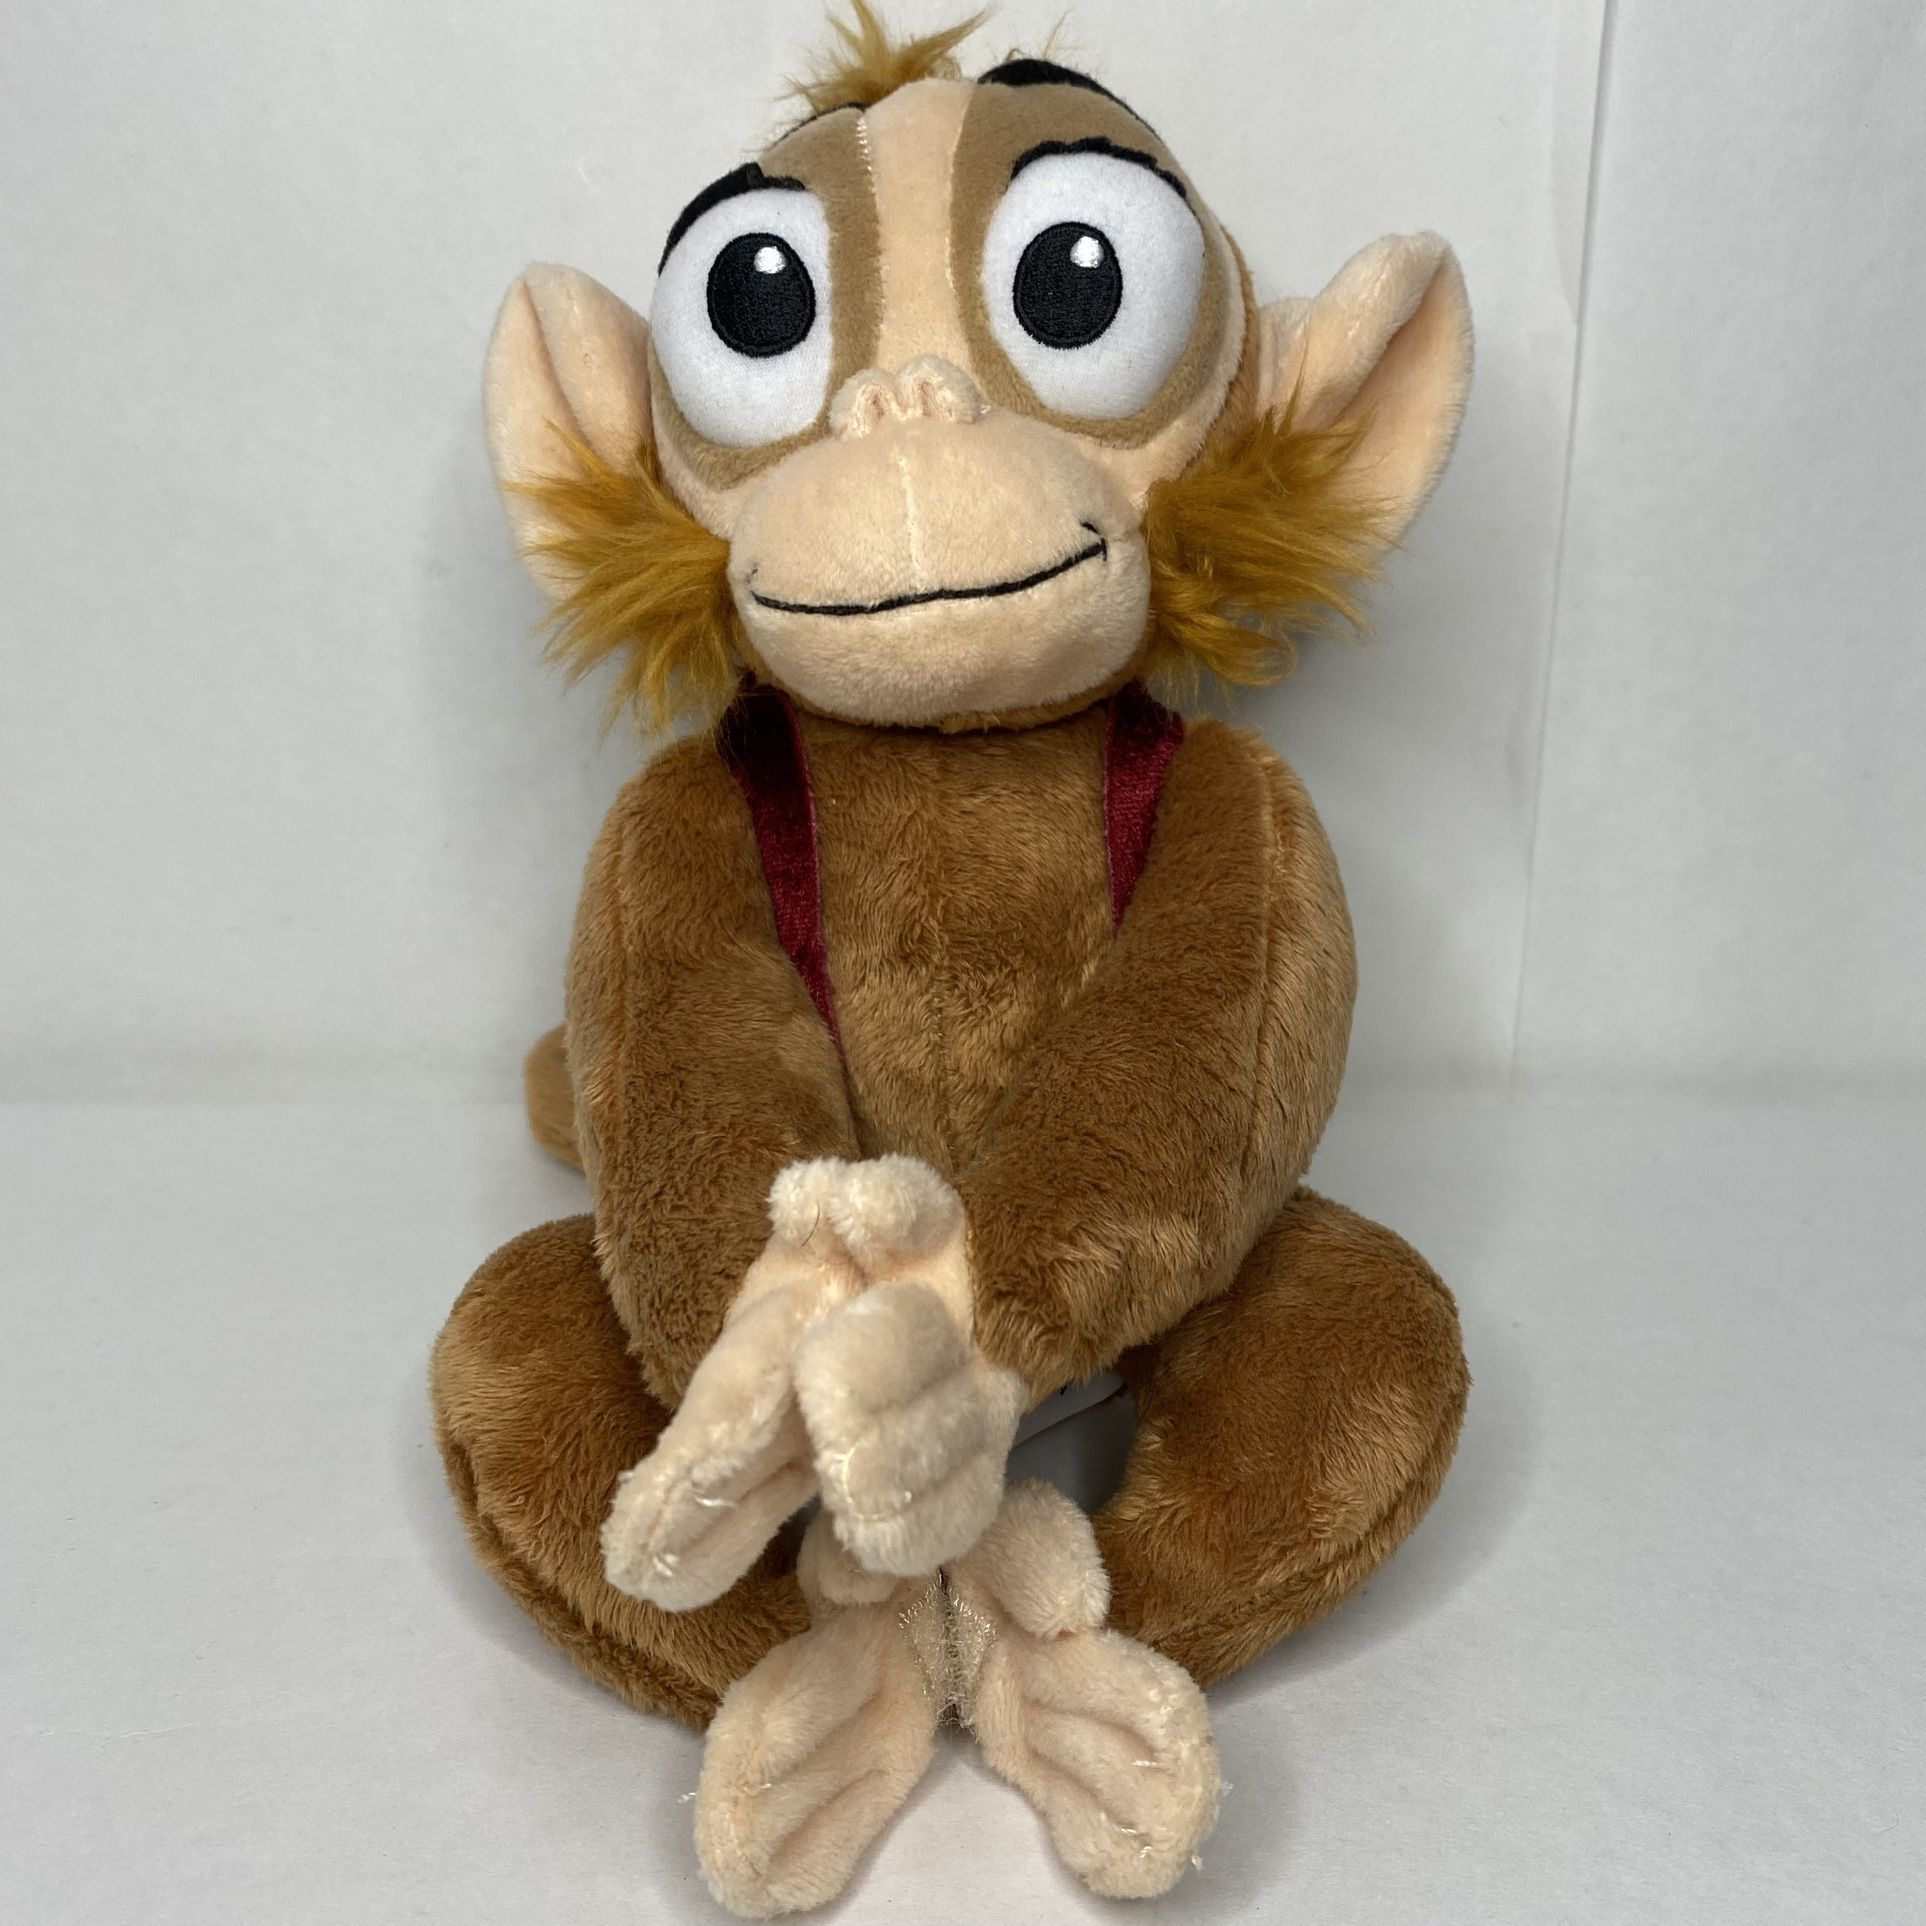 Vintage Disney Store Exclusive Abu Plush Monkey Aladdin Fasteners Hands And Feet